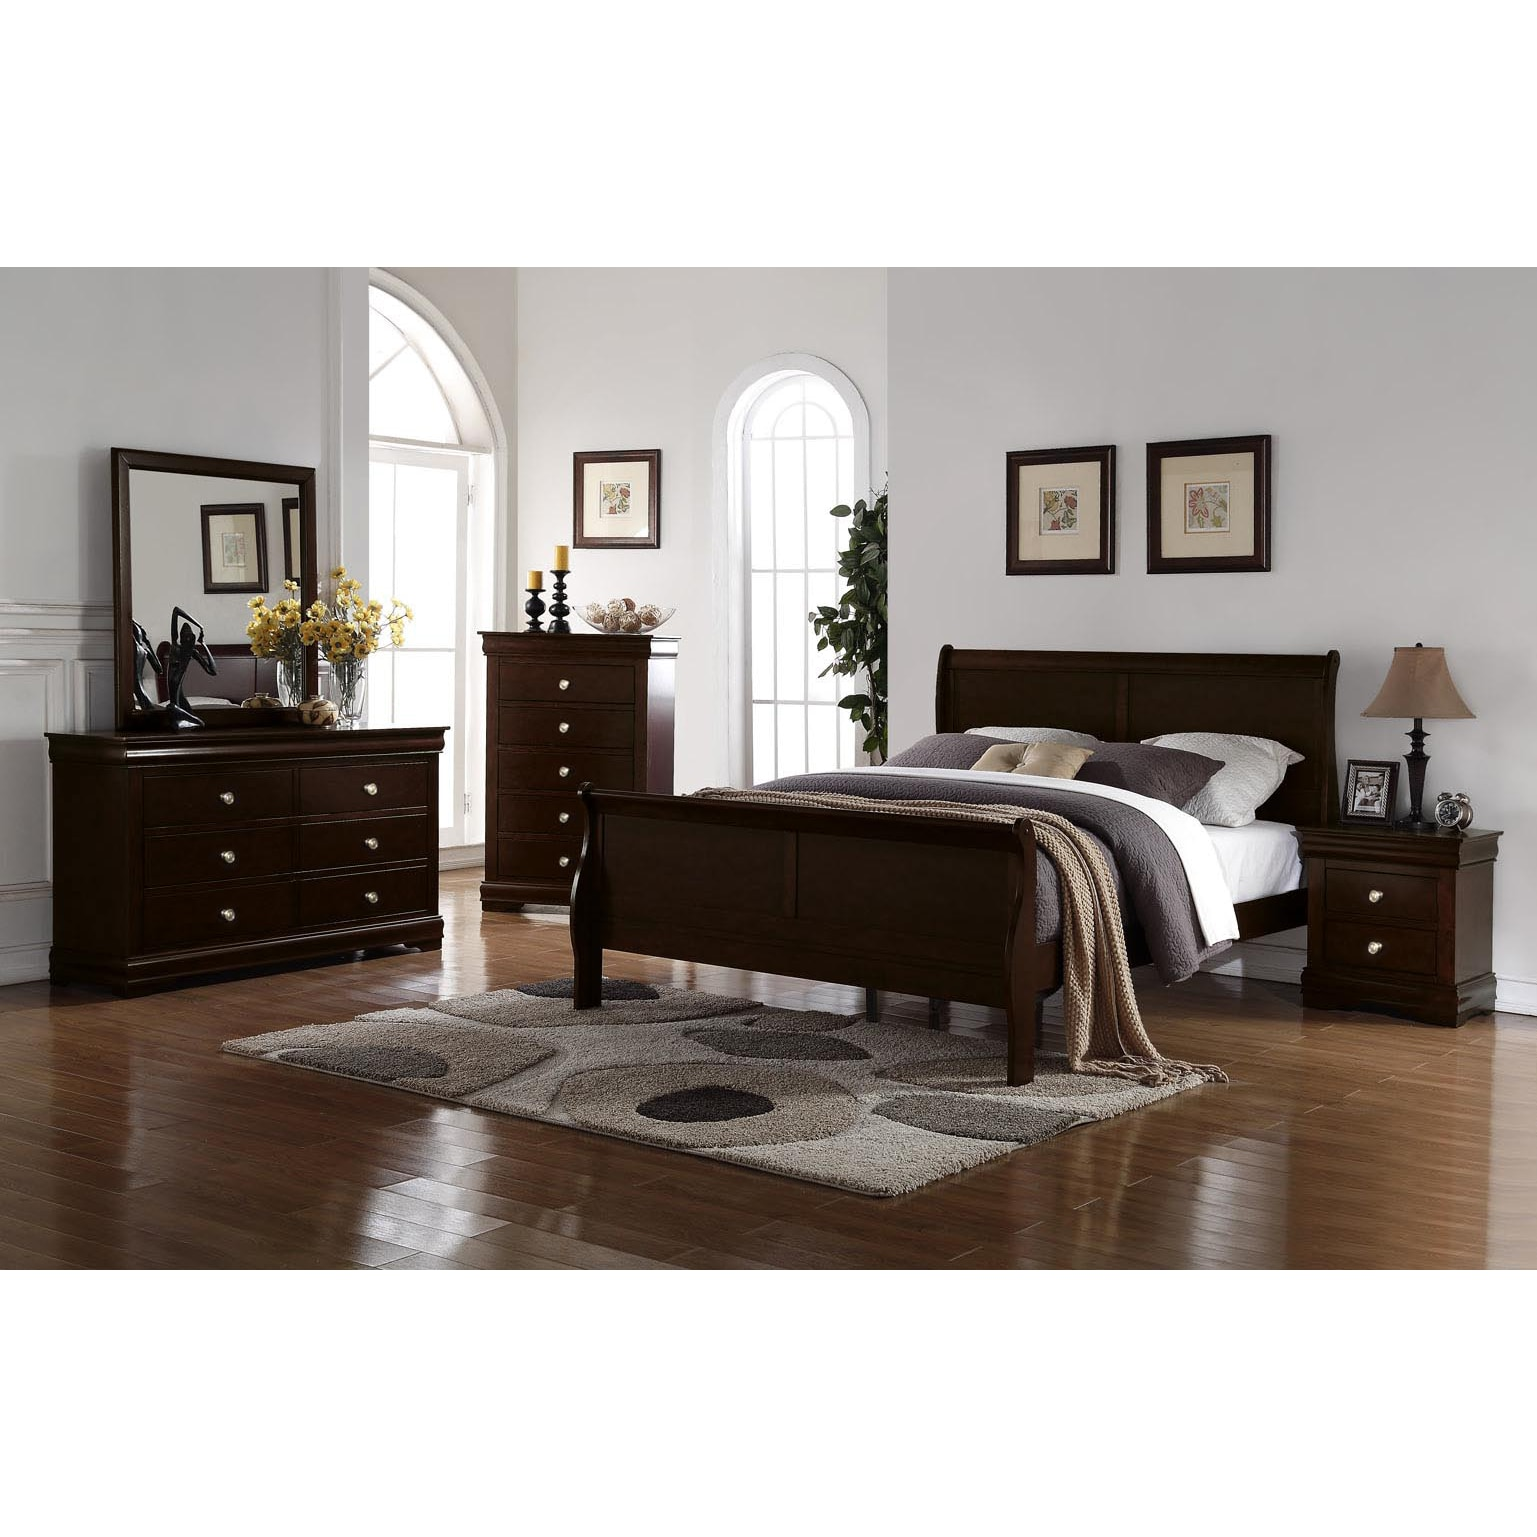 Ocala Louis Philippe 4pc Bedroom Set By Greyson Living Overstock 25438254